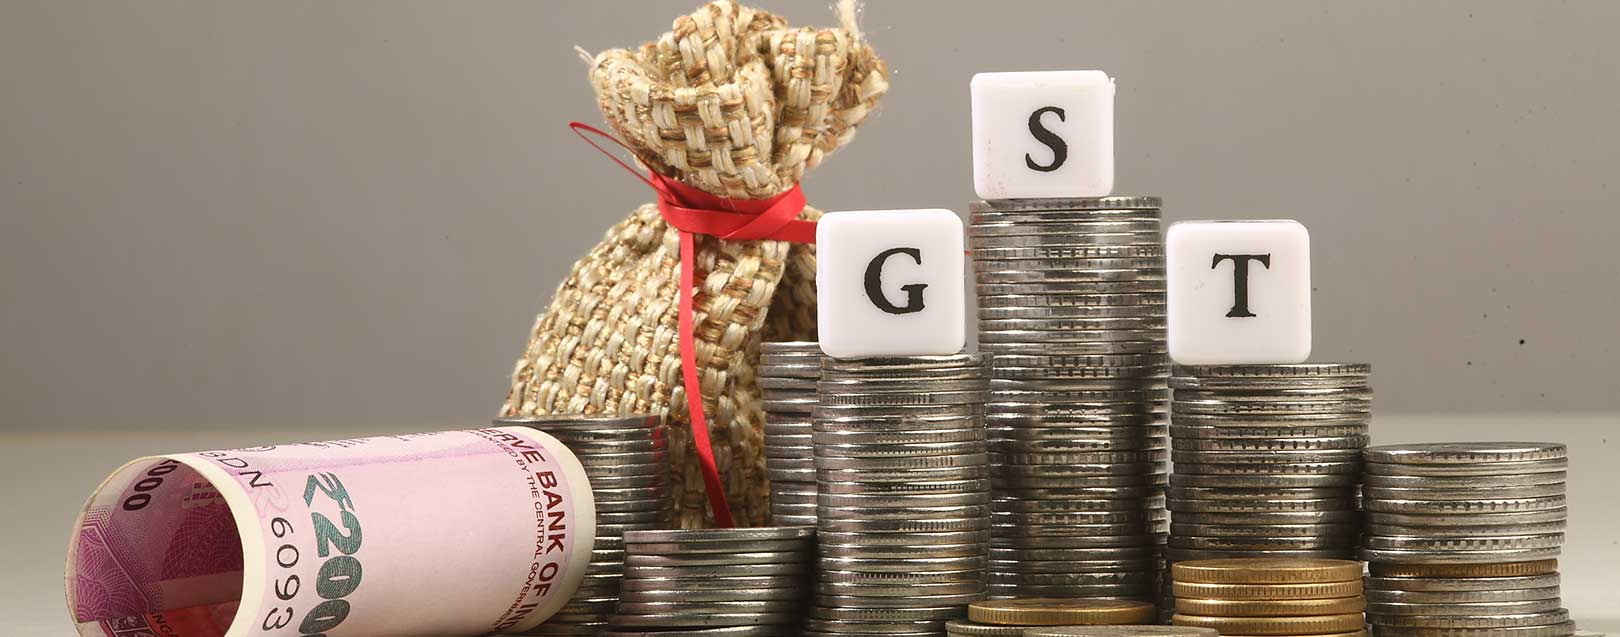 Continuous exports growth gives confidence to exporters on easy sailing with GST